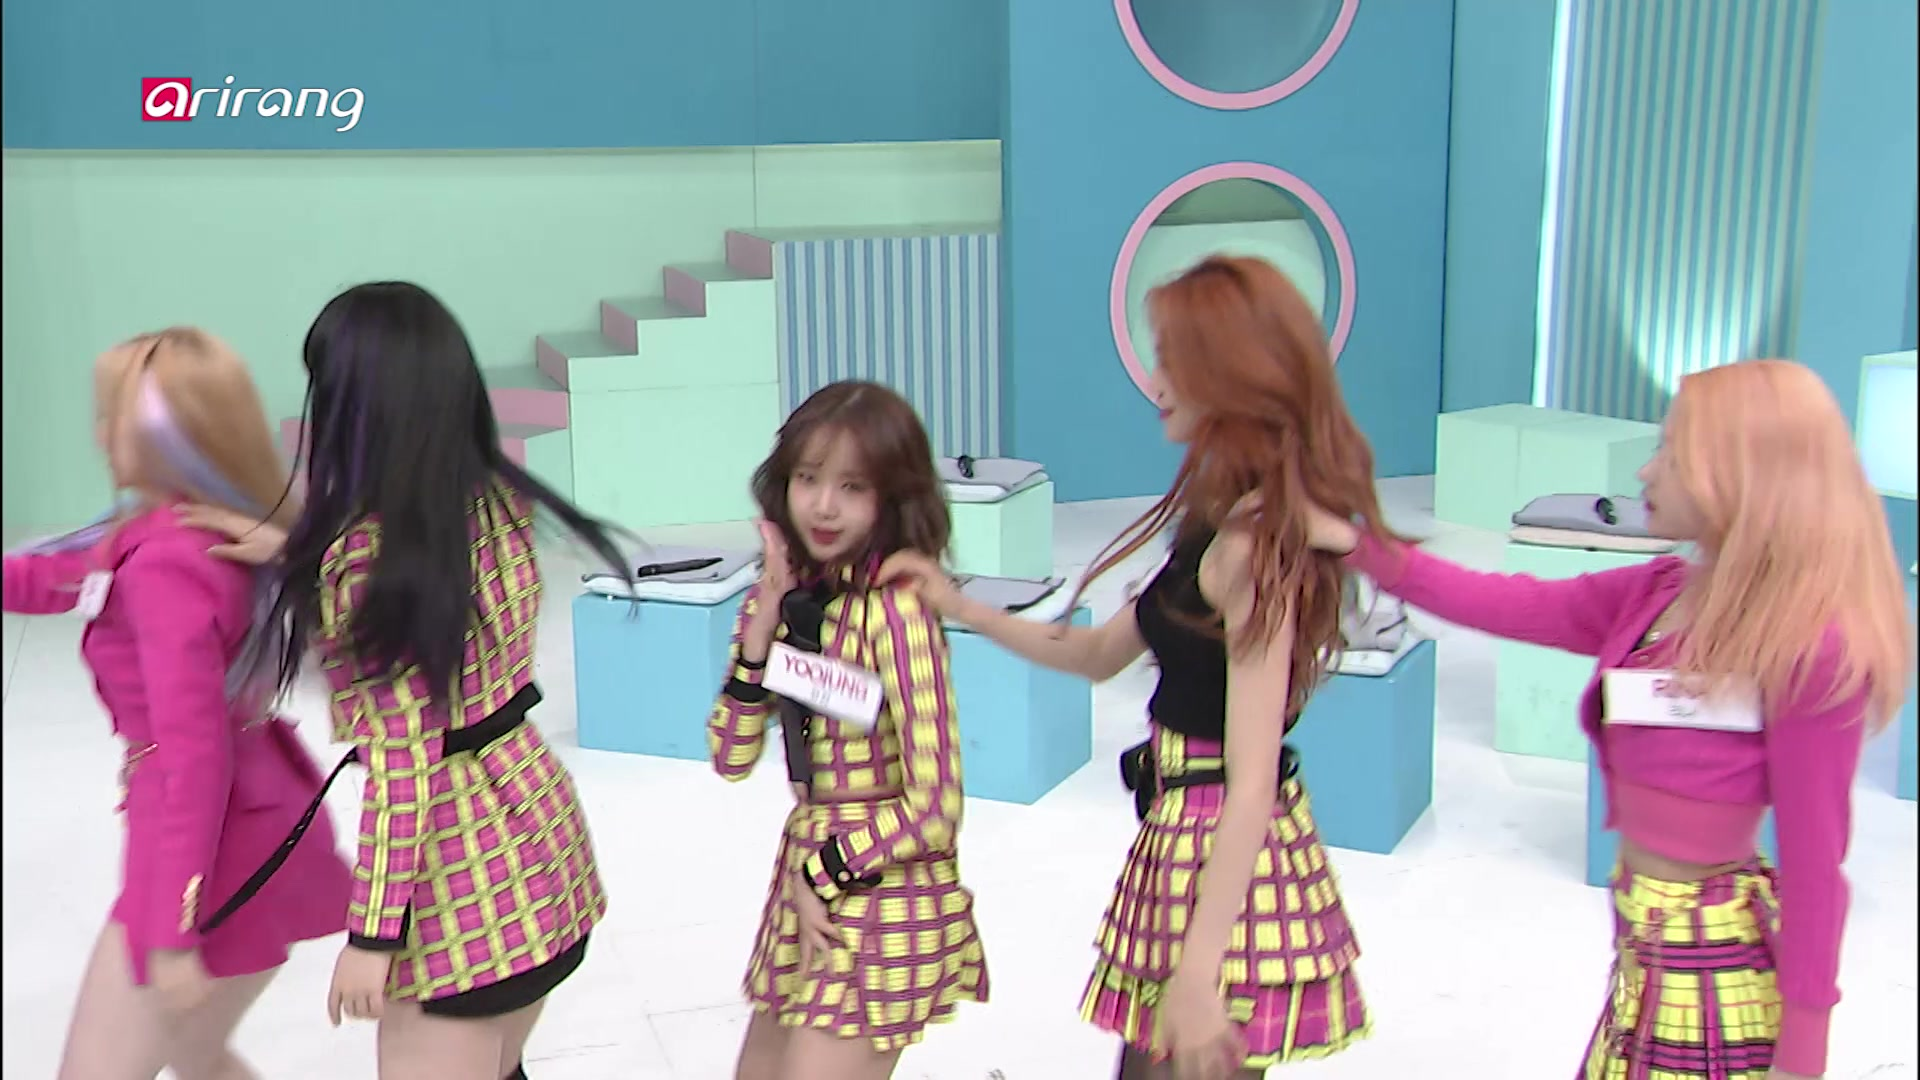 After School Club Episode 369: Weki Meki